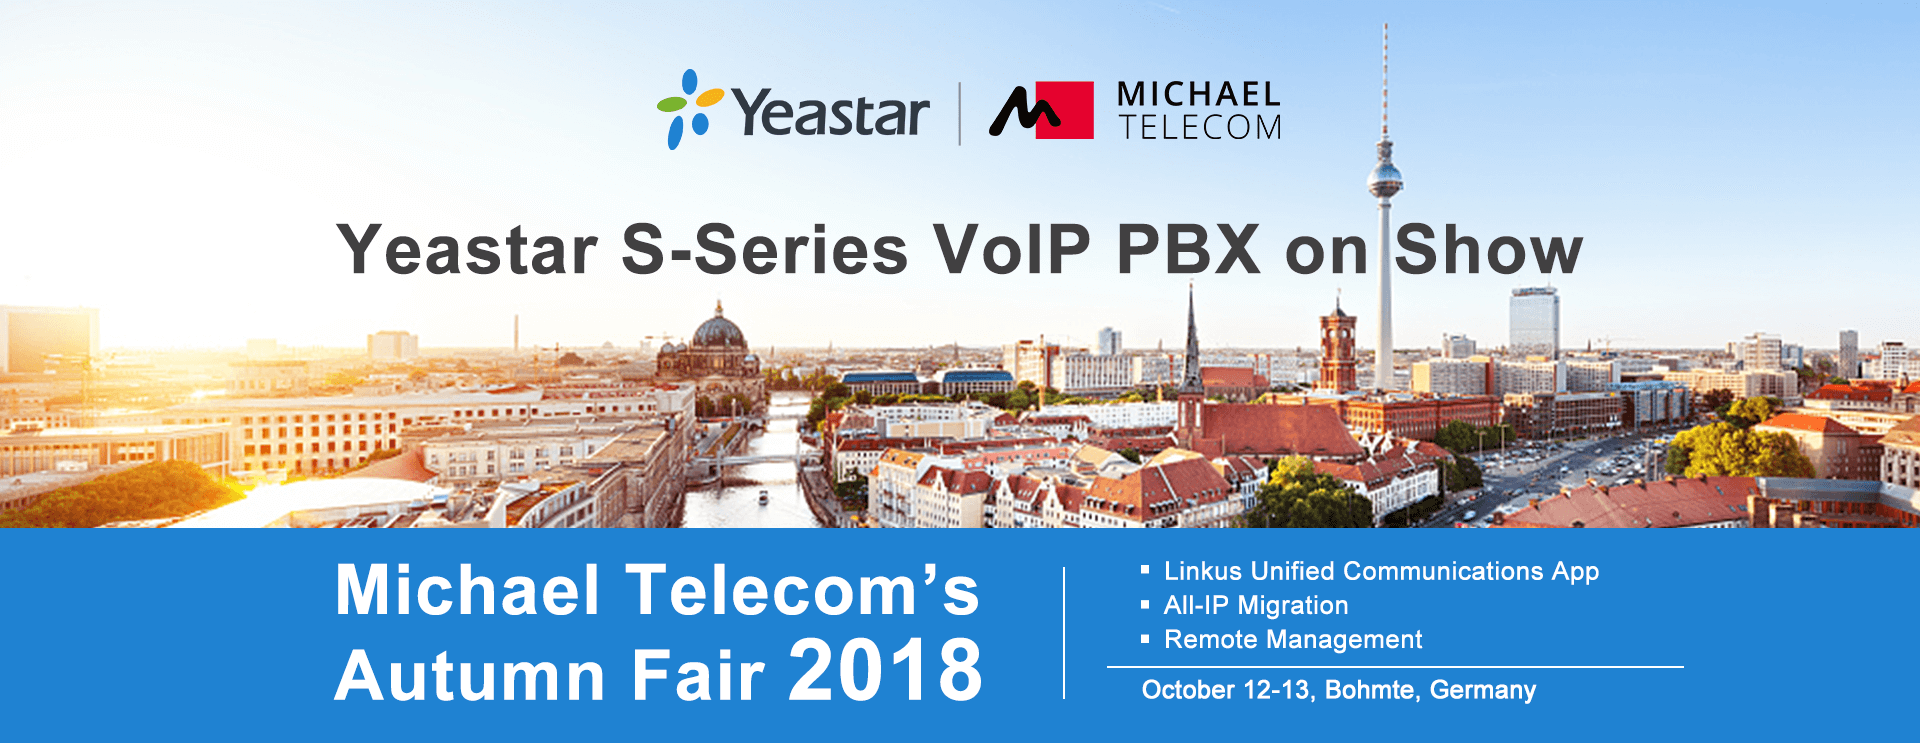 Michael Telecom's Autumn Fair 2018